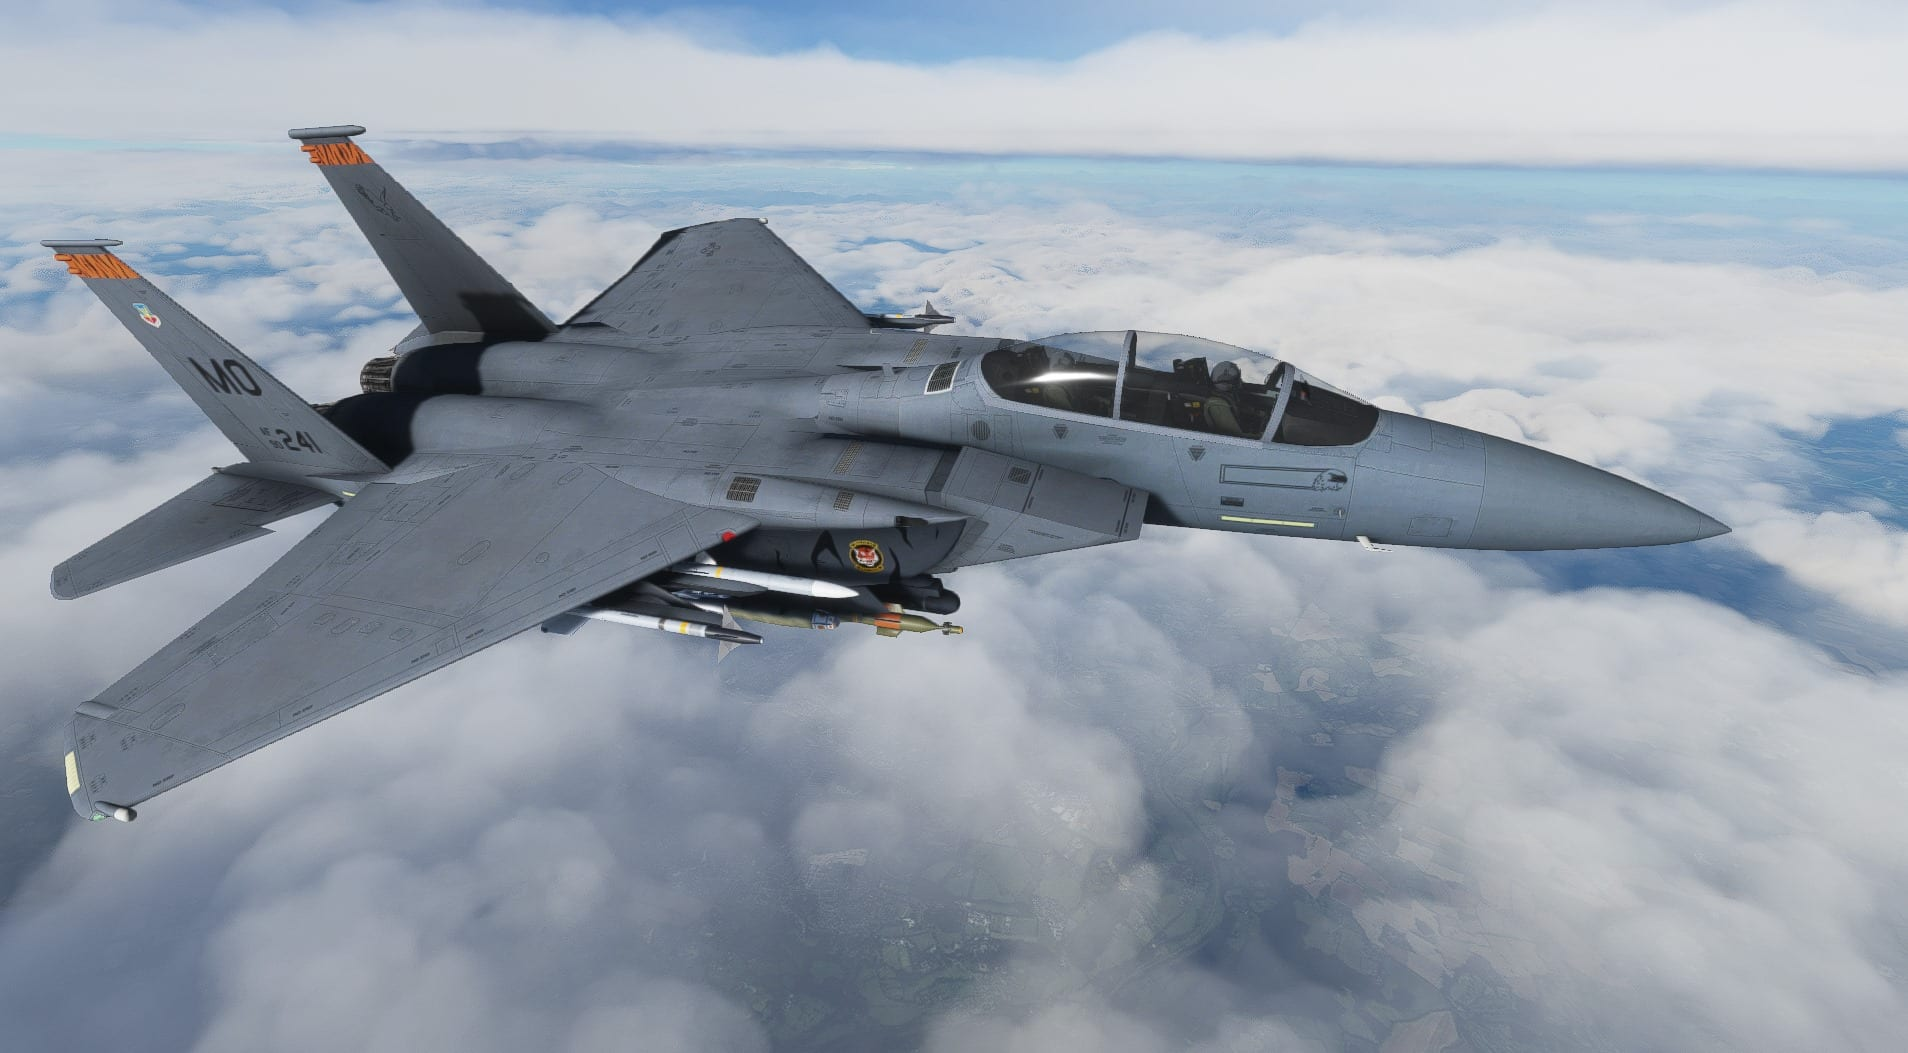 Microsoft Flight Simulator F-15 Add-On Recovers From Terrifying Spin in New Video 1